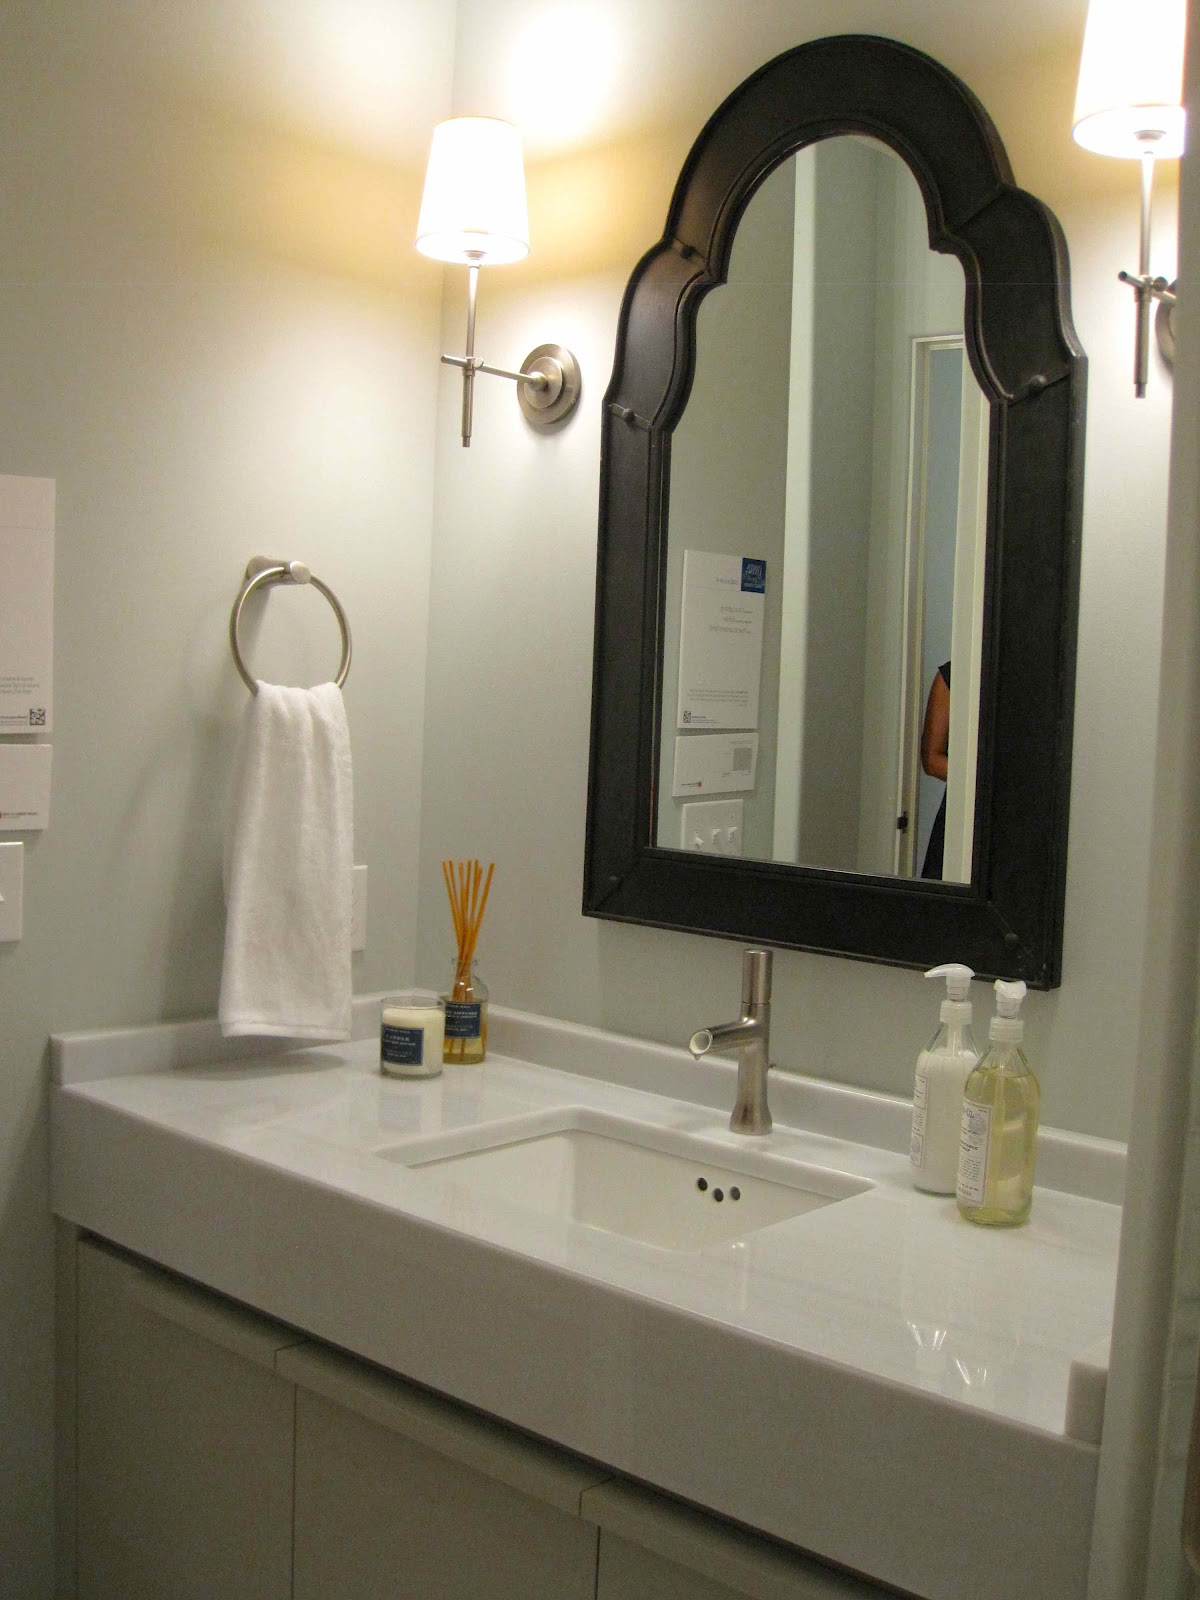 Luxurious Vanity With Sink also Mirror Between Nice Wall Lamps